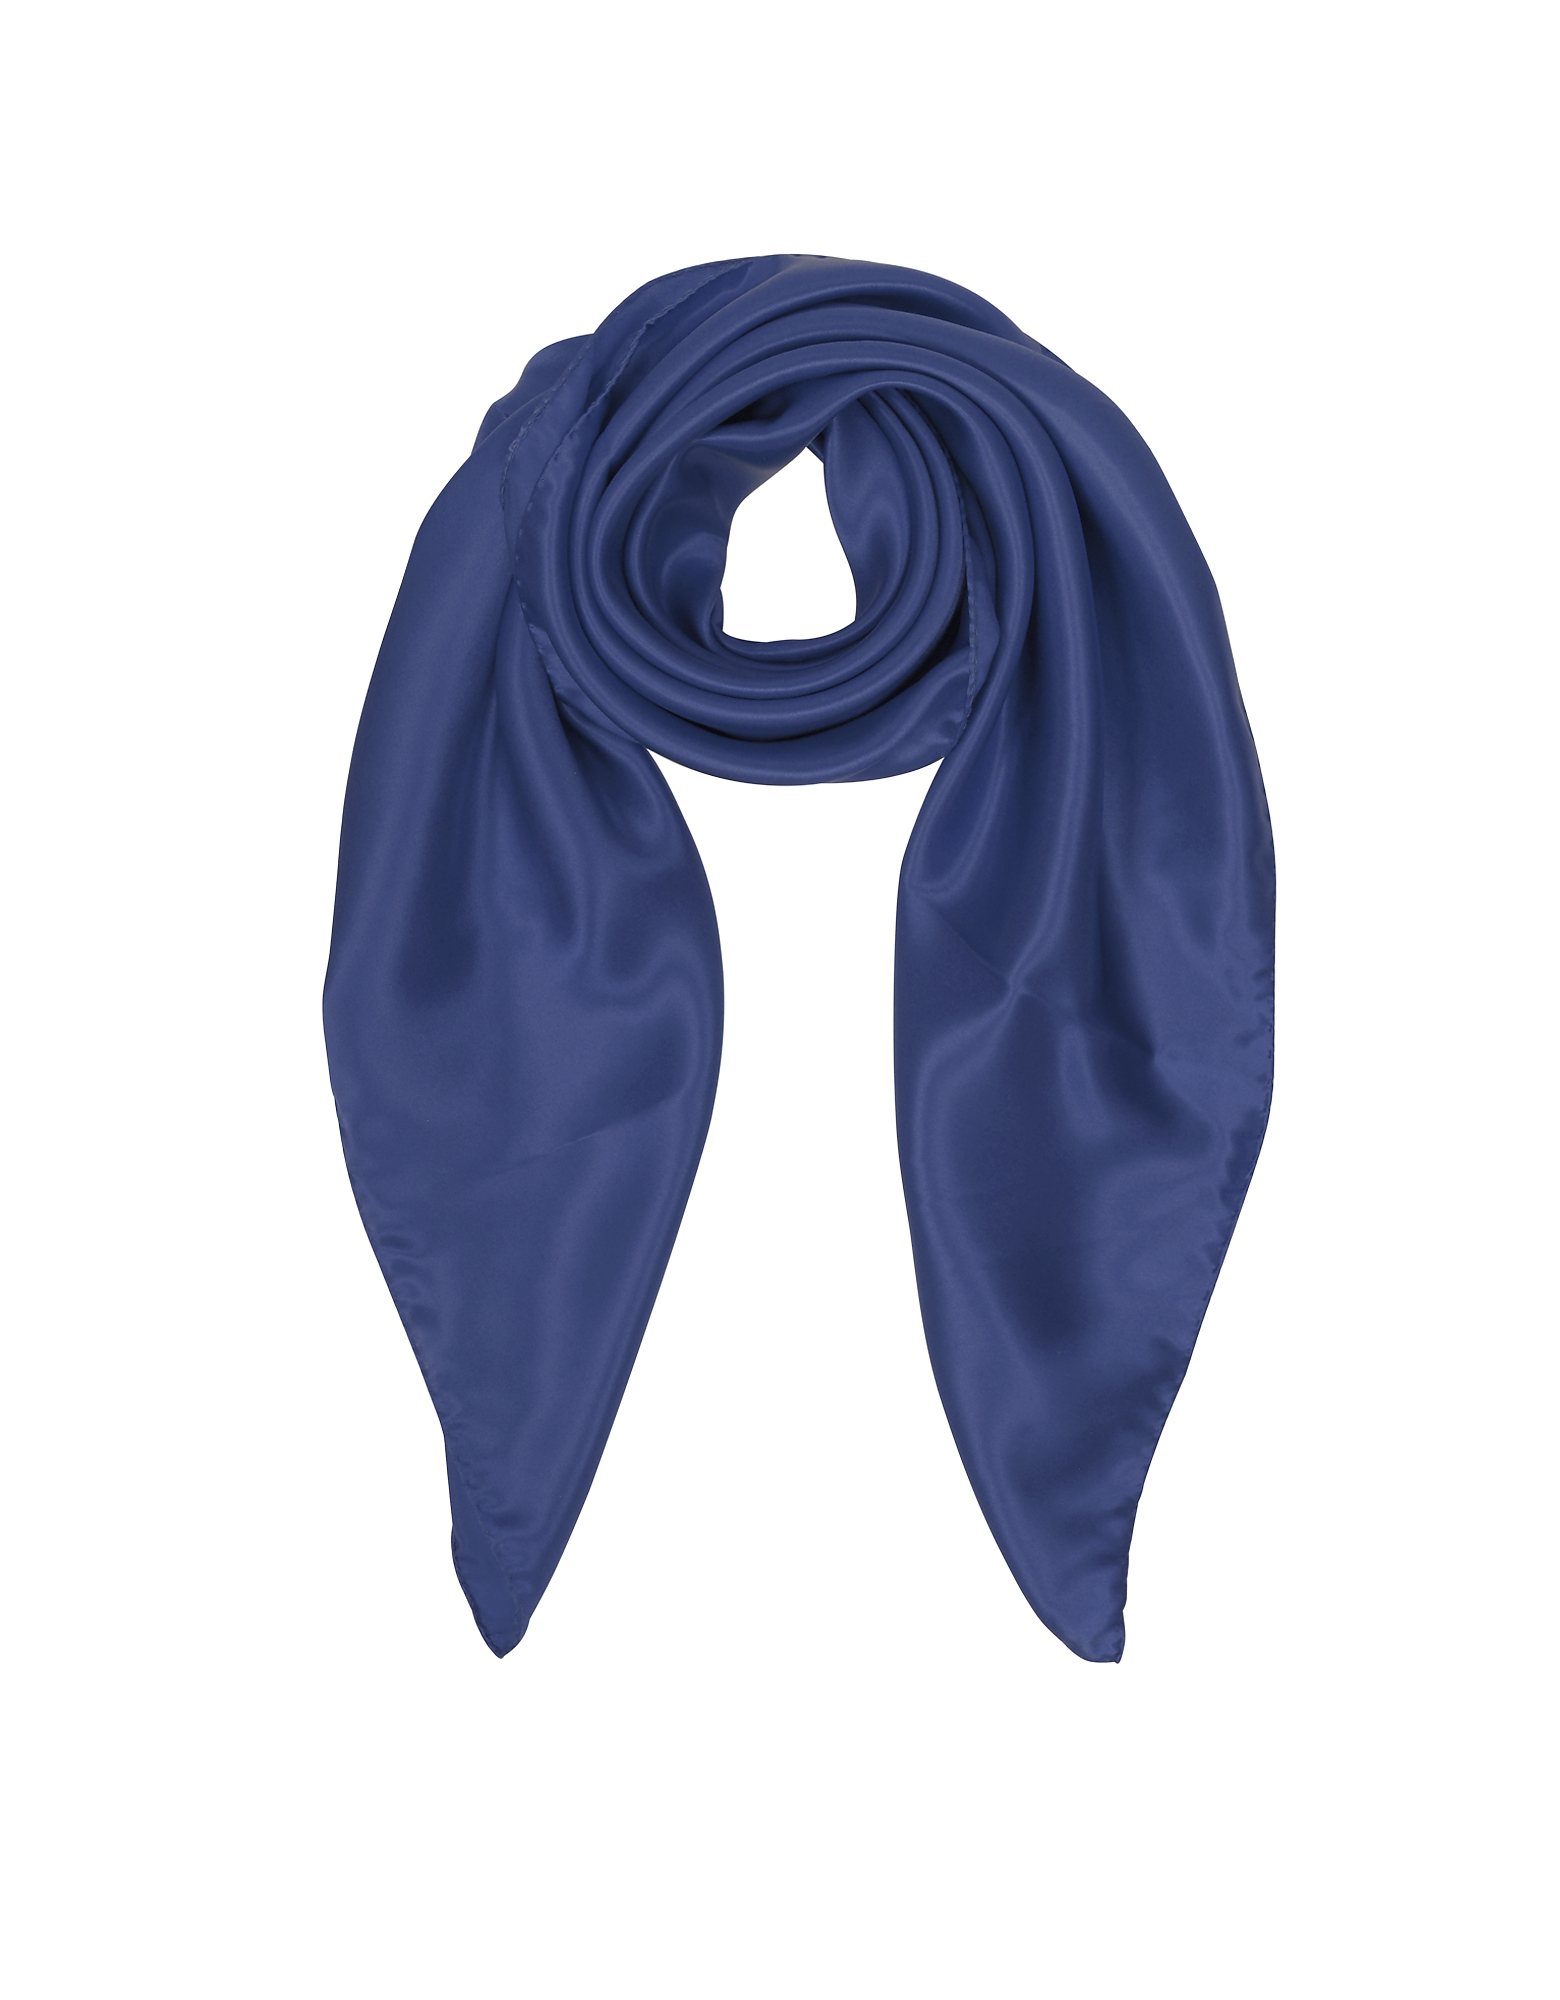 Forzieri Square Scarves, Solid Twill Silk Square Scarf